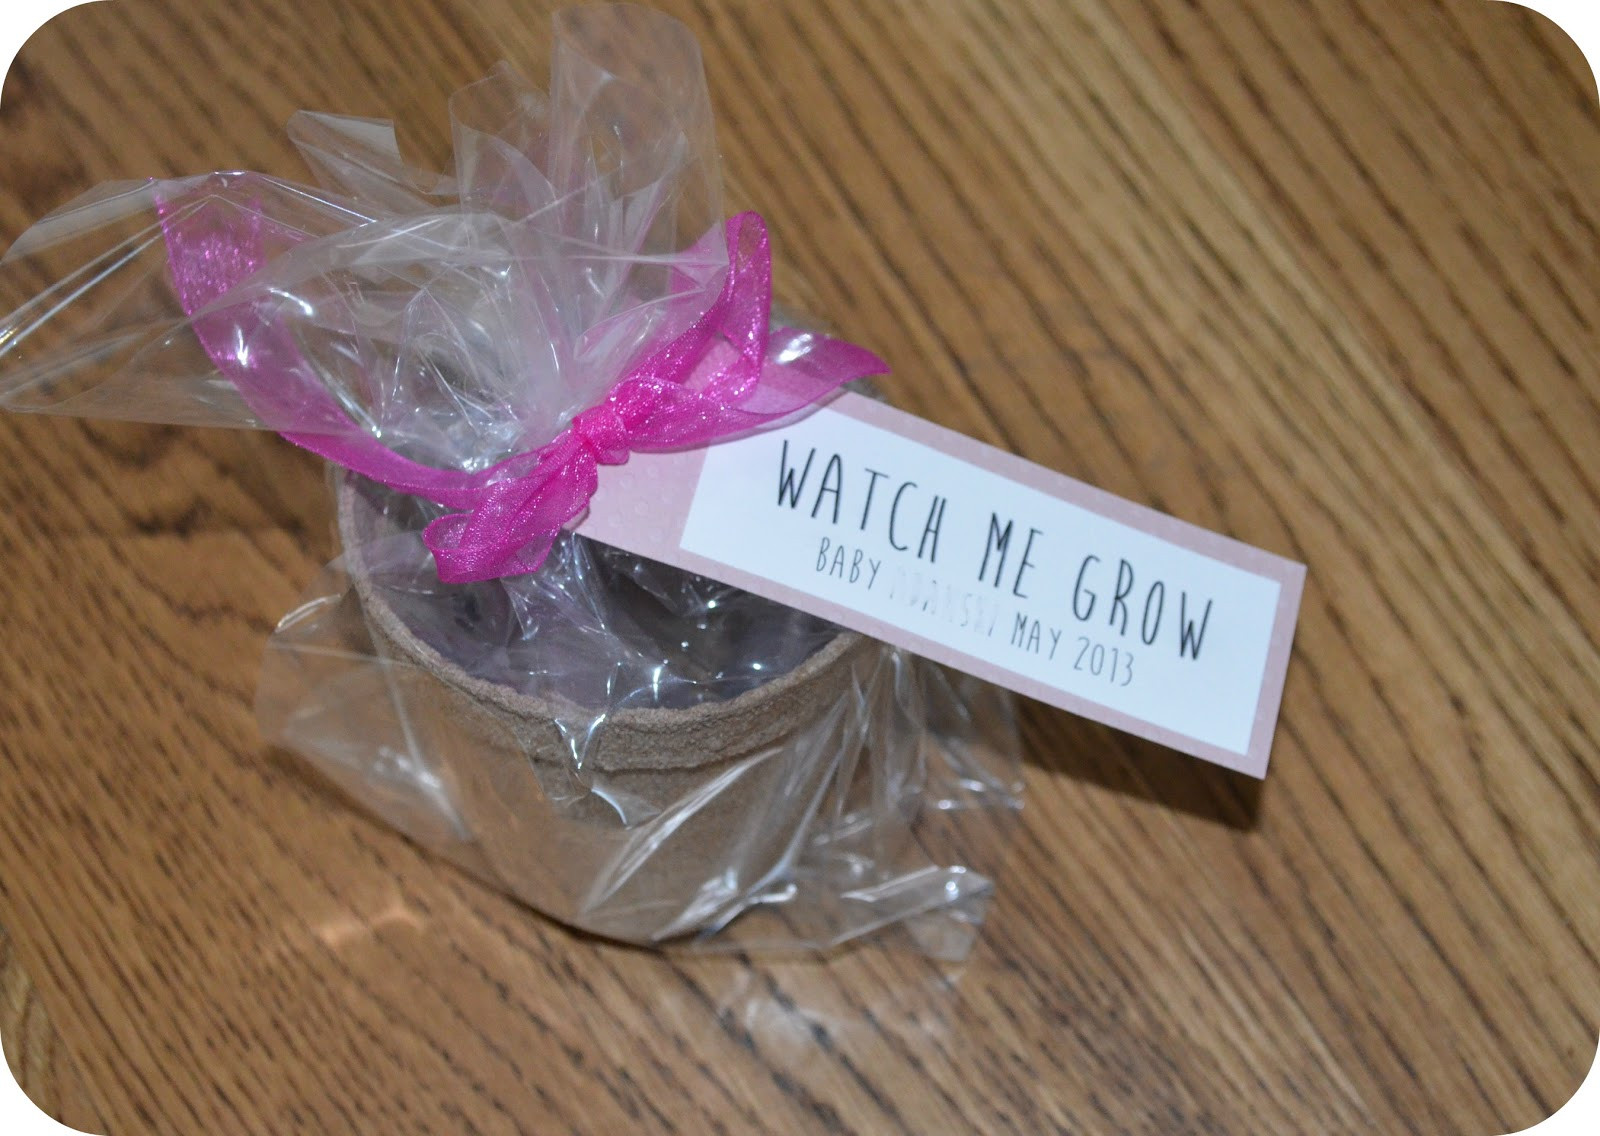 Baby Shower Party Favors DIY  Stay Blonde DIY Baby Shower Party Favors on a Bud